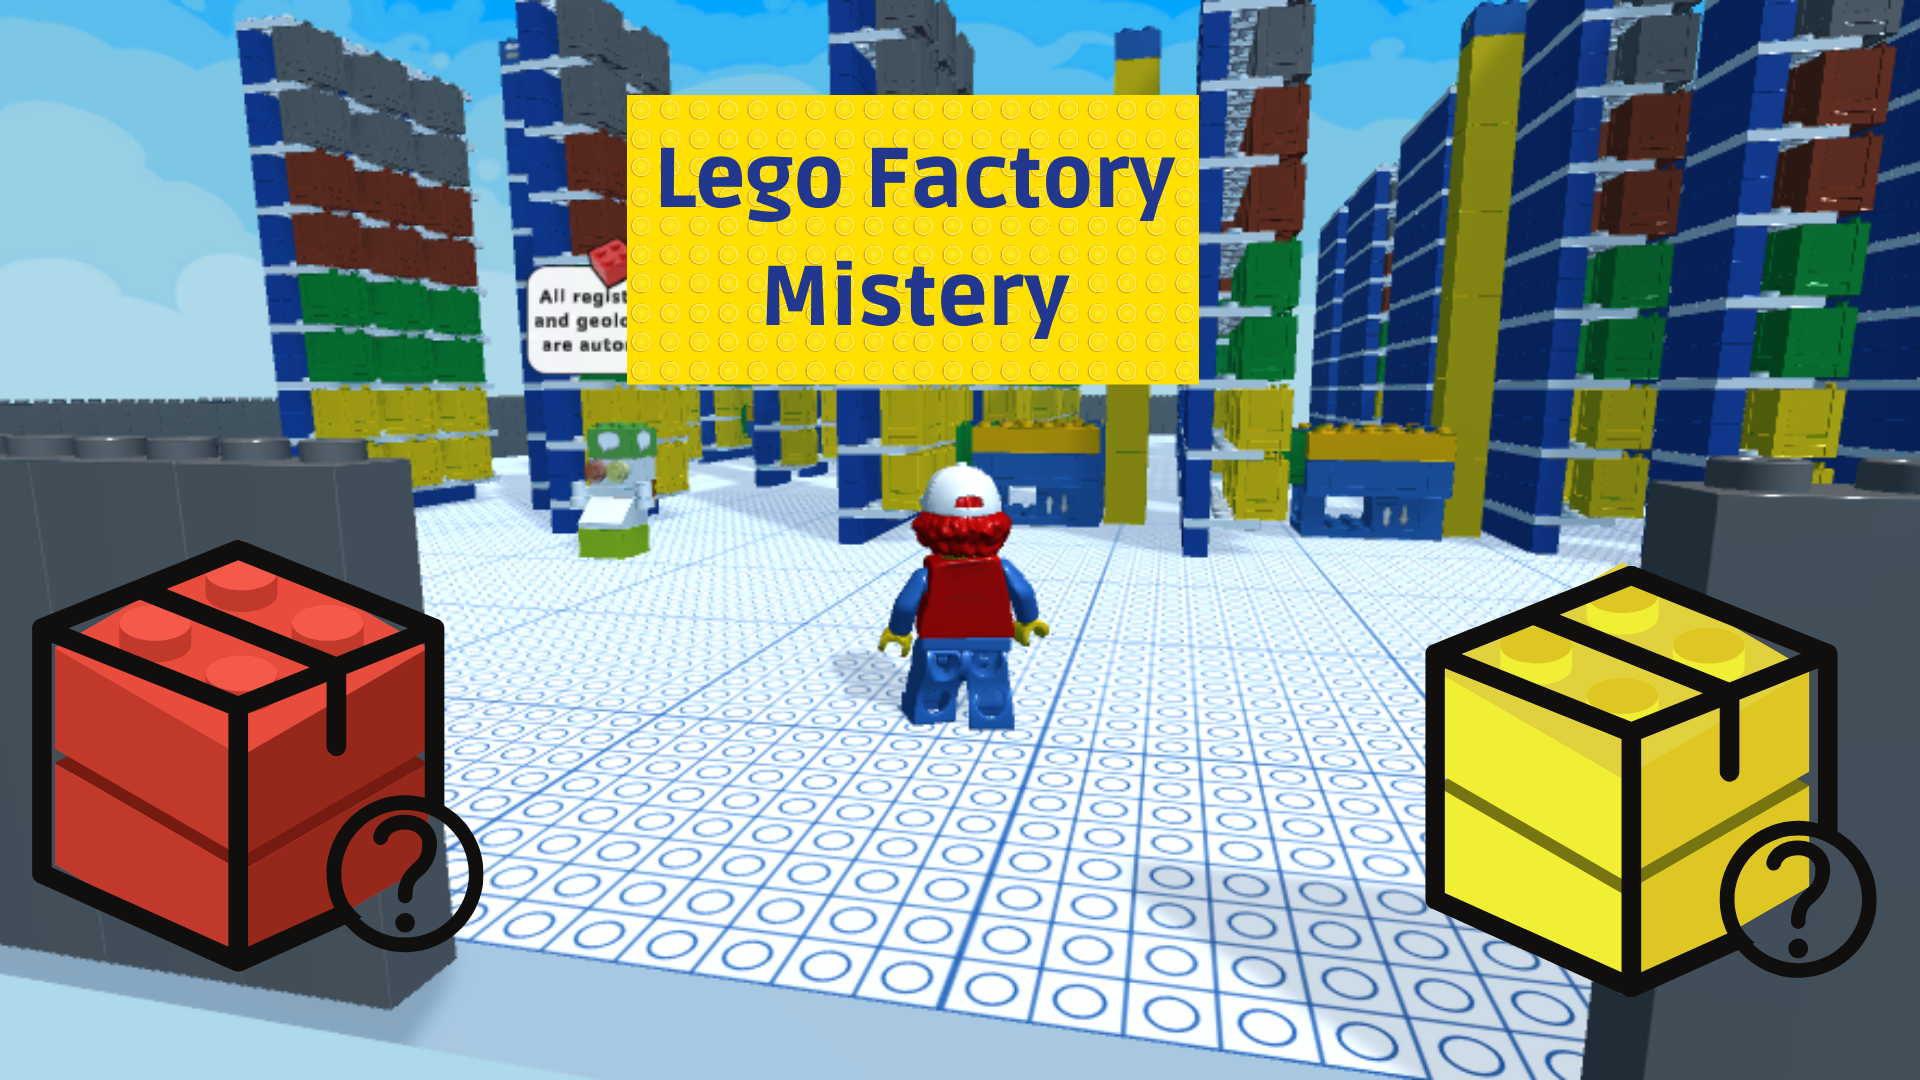 The Lego Factory Mistery